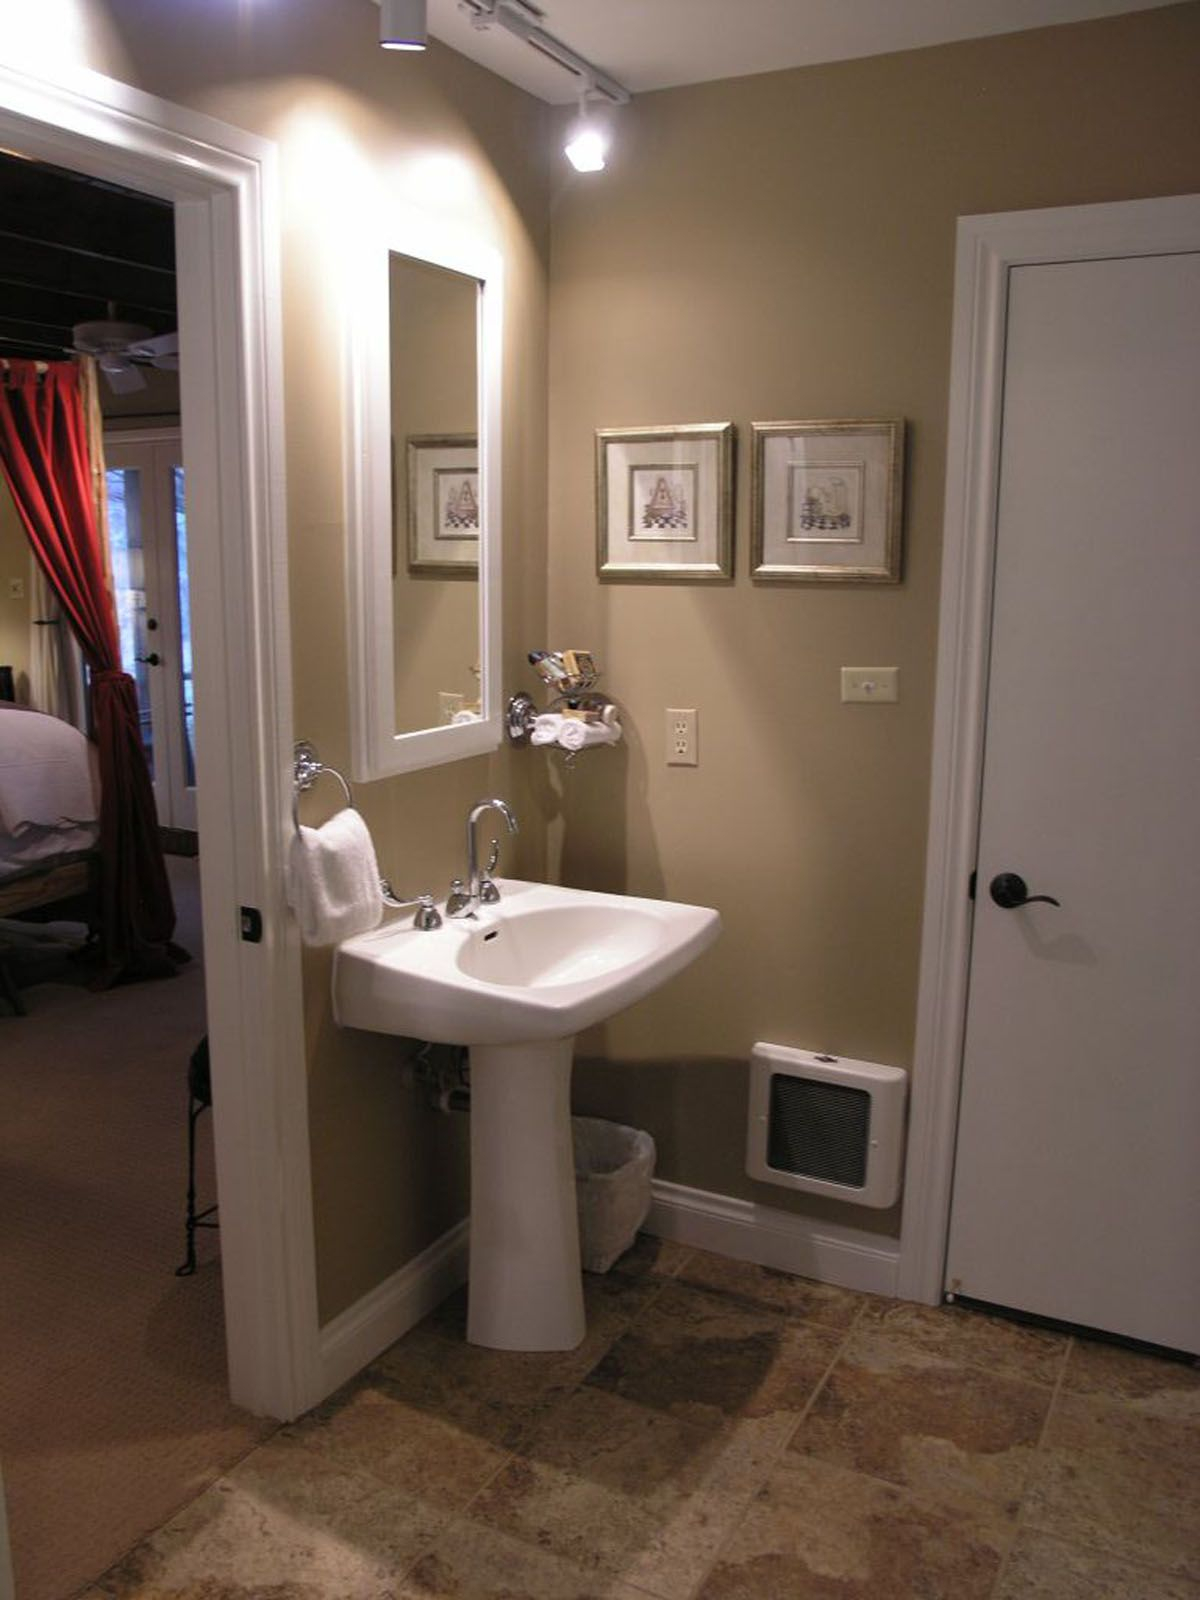 What Are Some Good Colors For Bathroom